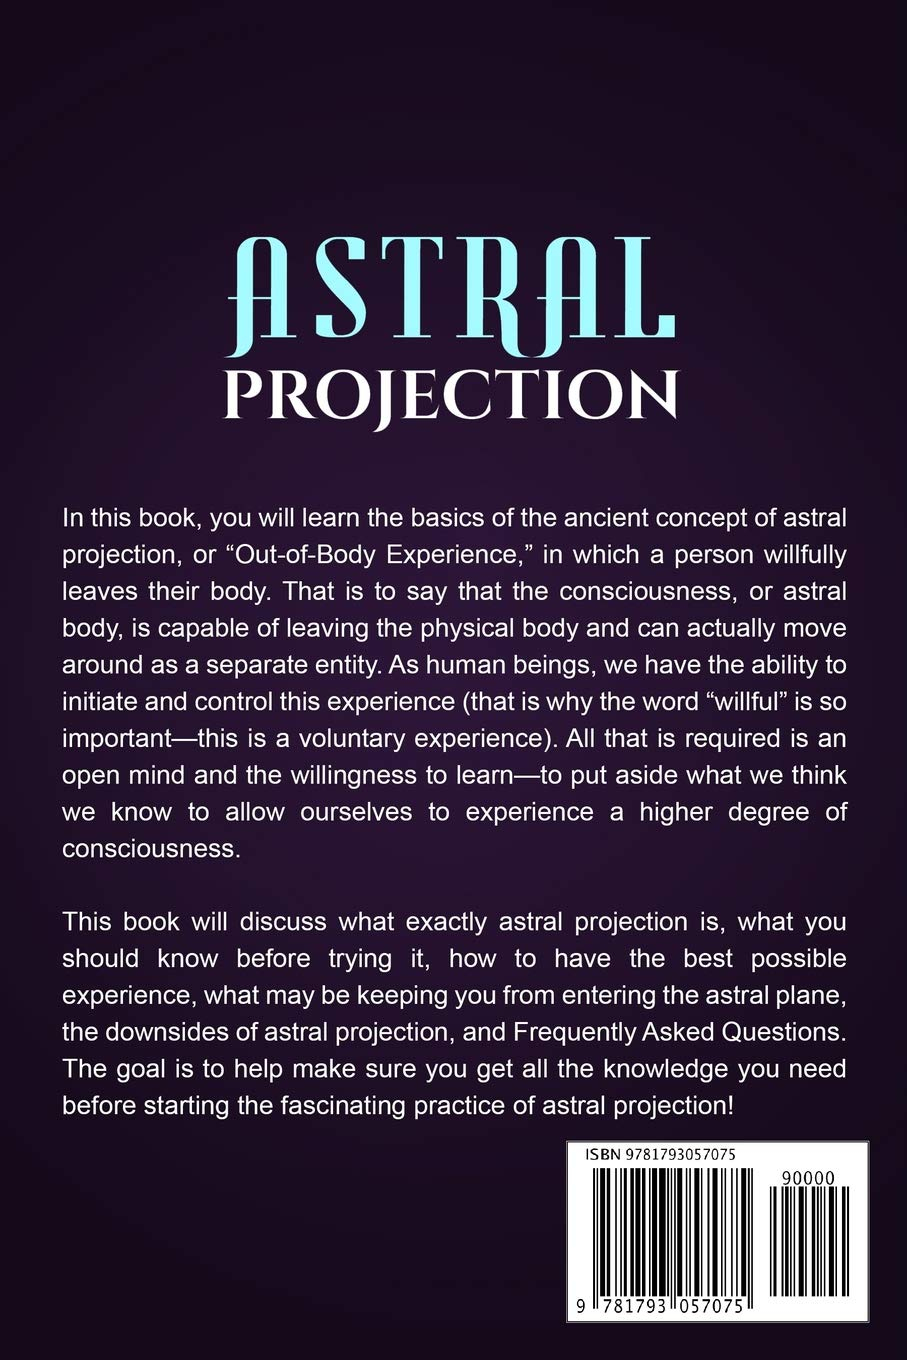 Astral Projection Unlocking The Secrets Of Astral Travel And Having A Willful Out Of Body Experience Including Tips For Entering The Astral Plane And Shifting Into Higher Consciousness Moon Kimberly 9781793057075 Amazon Com Books